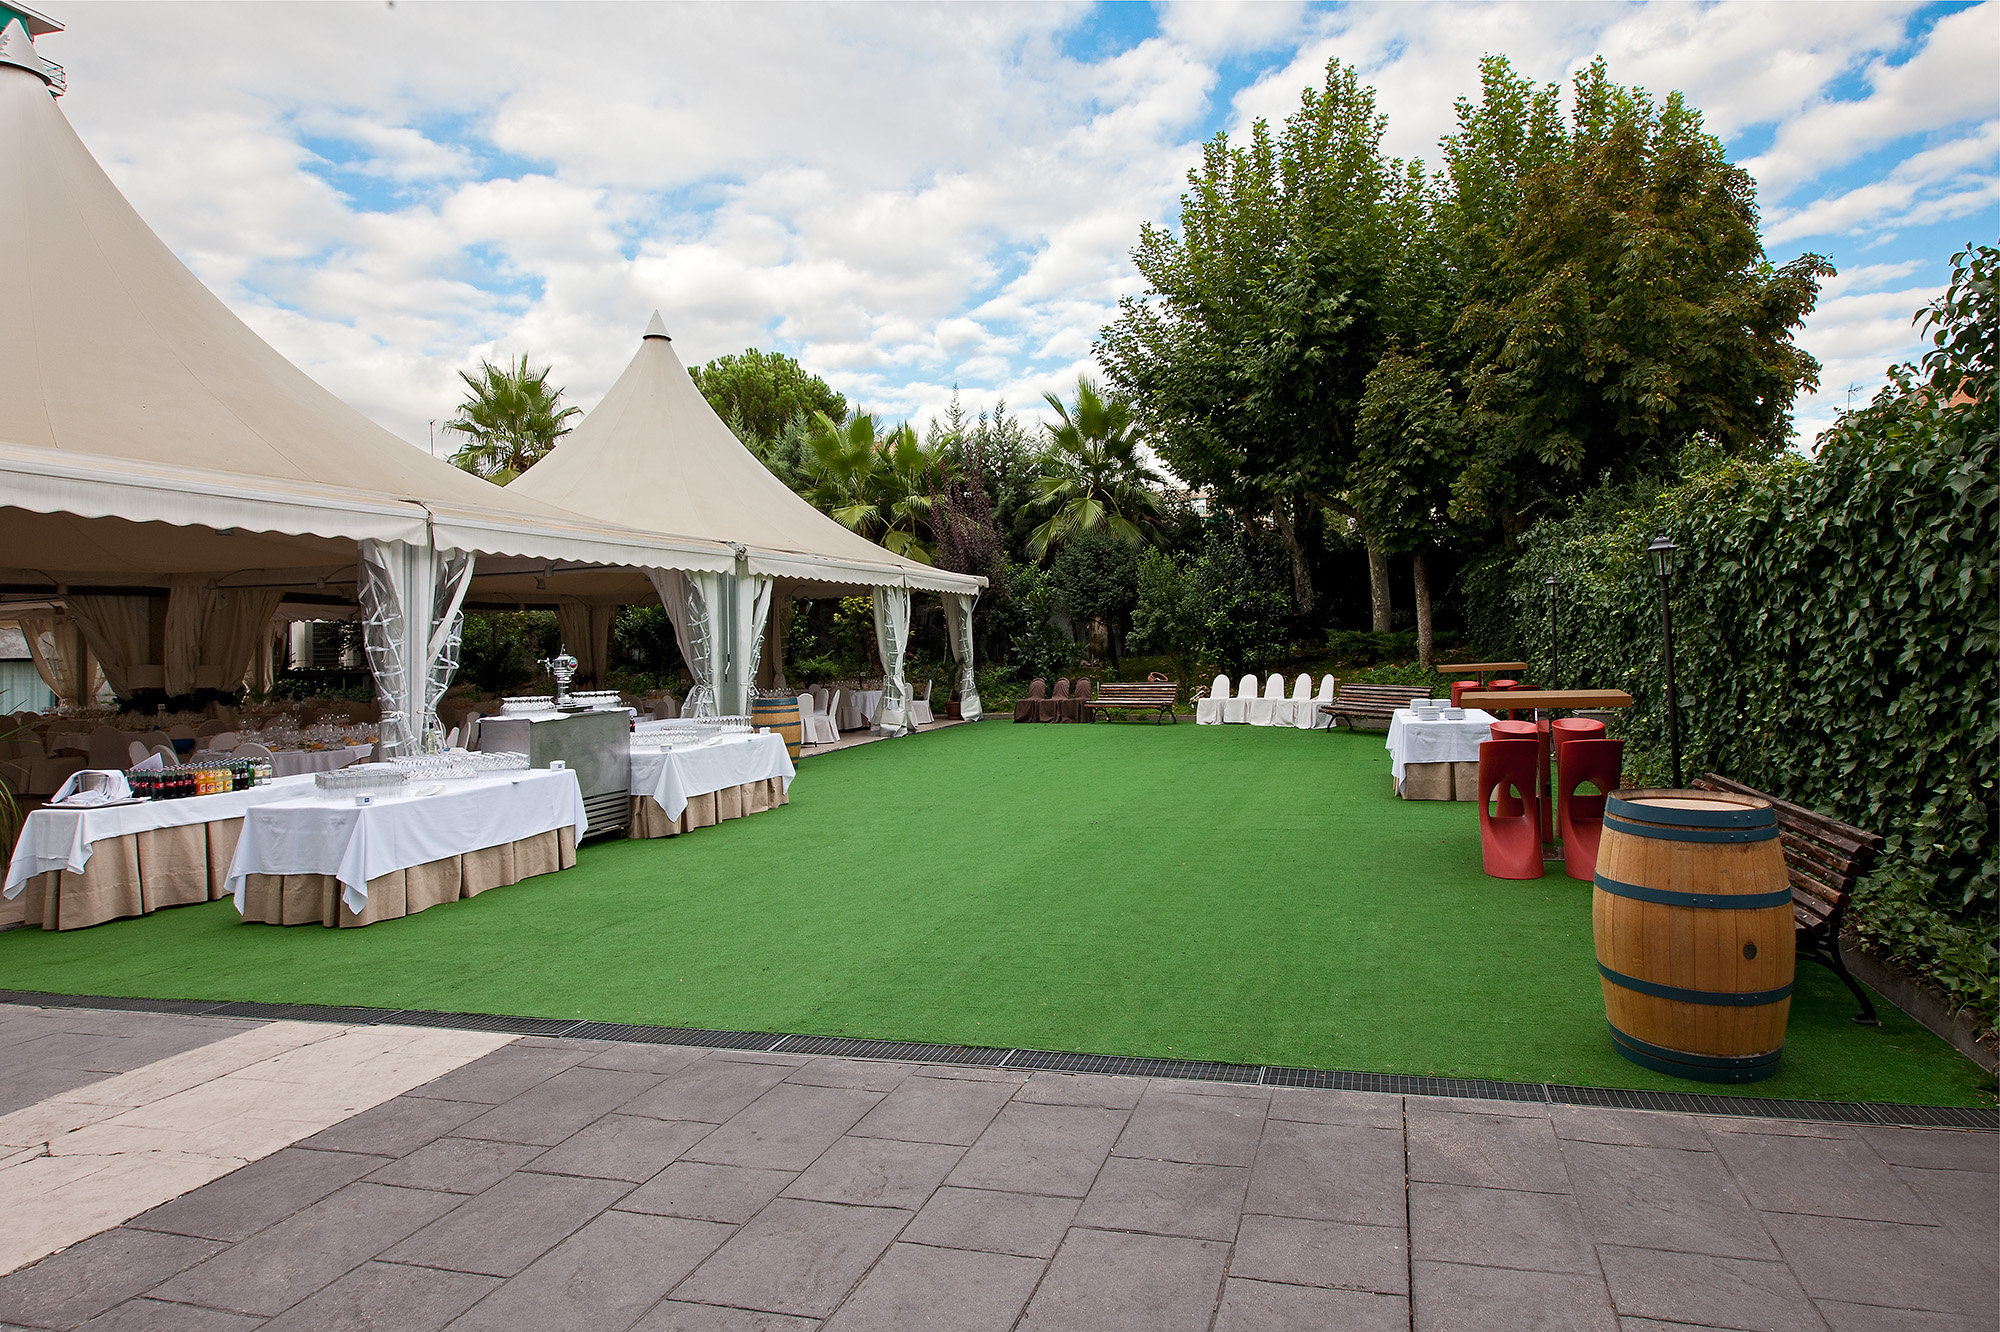 Nh hoteles blogs tu boda en un jard n en el centro de madrid for Boda madrid jardin